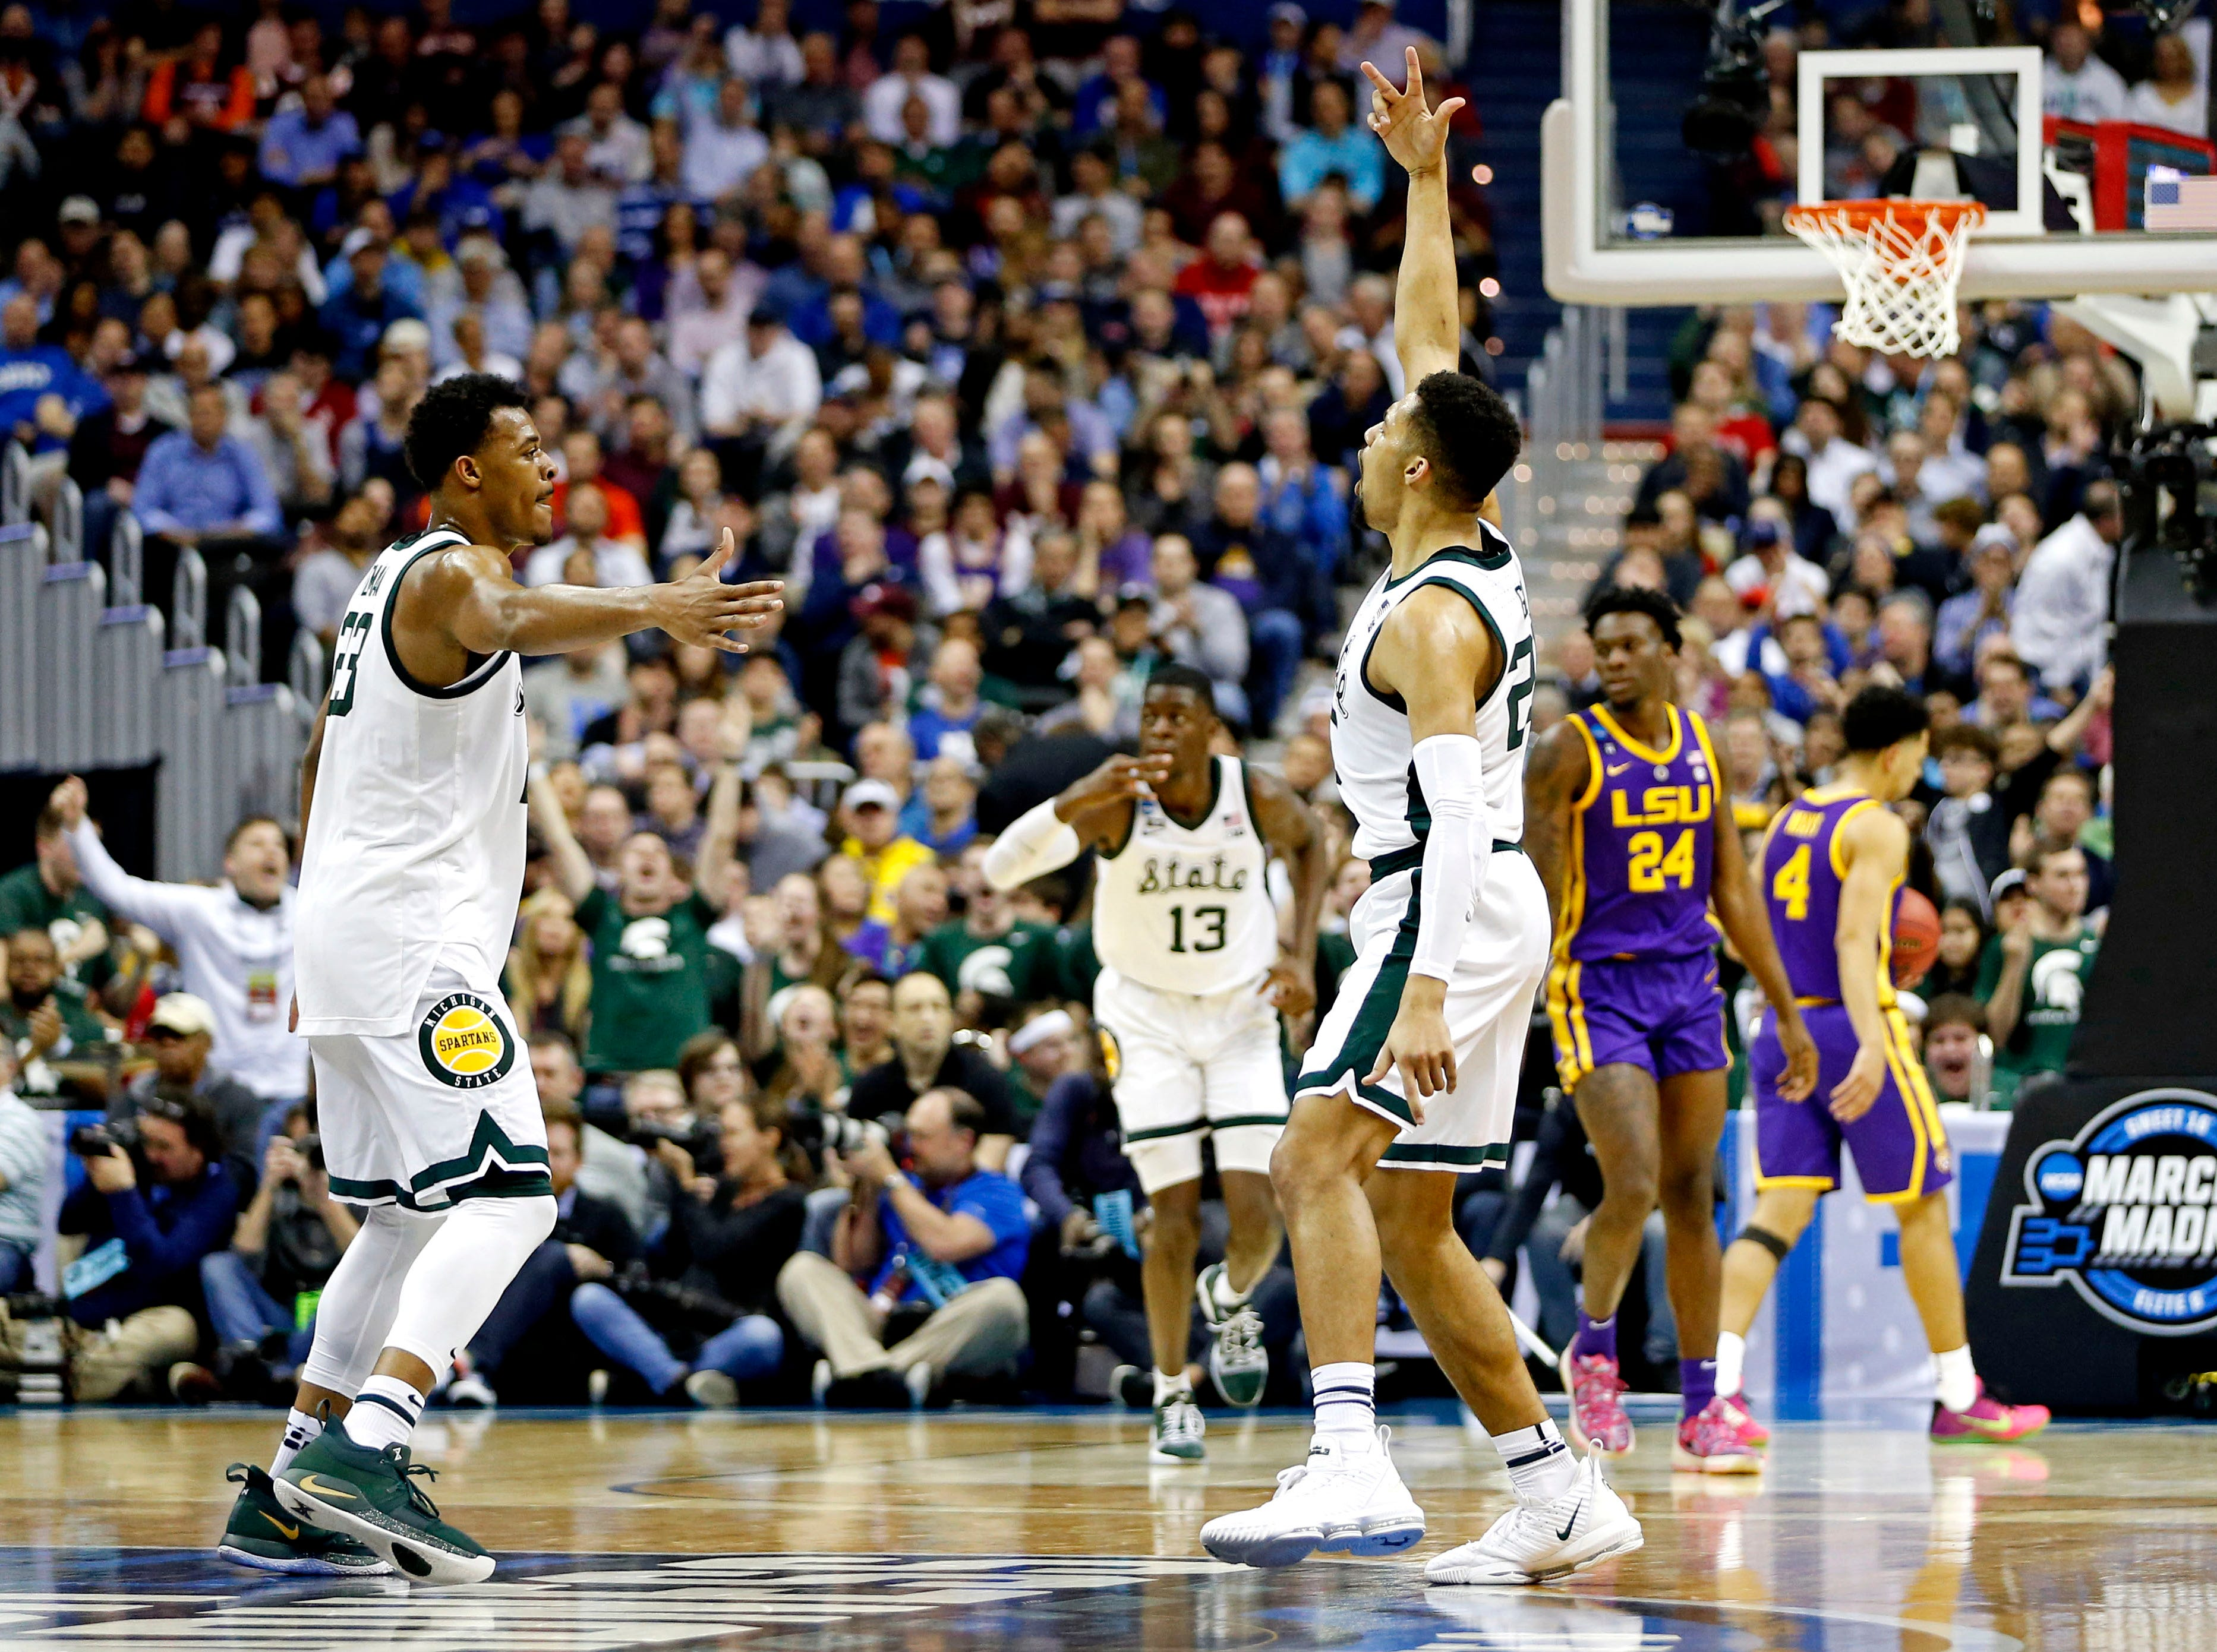 Mar 29, 2019; Washington, DC, USA; Michigan State Spartans forward Xavier Tillman (23) and Michigan State Spartans forward Kenny Goins (25) celebrate during the second half against the LSU Tigers in the semifinals of the east regional of the 2019 NCAA Tournament at Capital One Arena. Mandatory Credit: Amber Searls-USA TODAY Sports